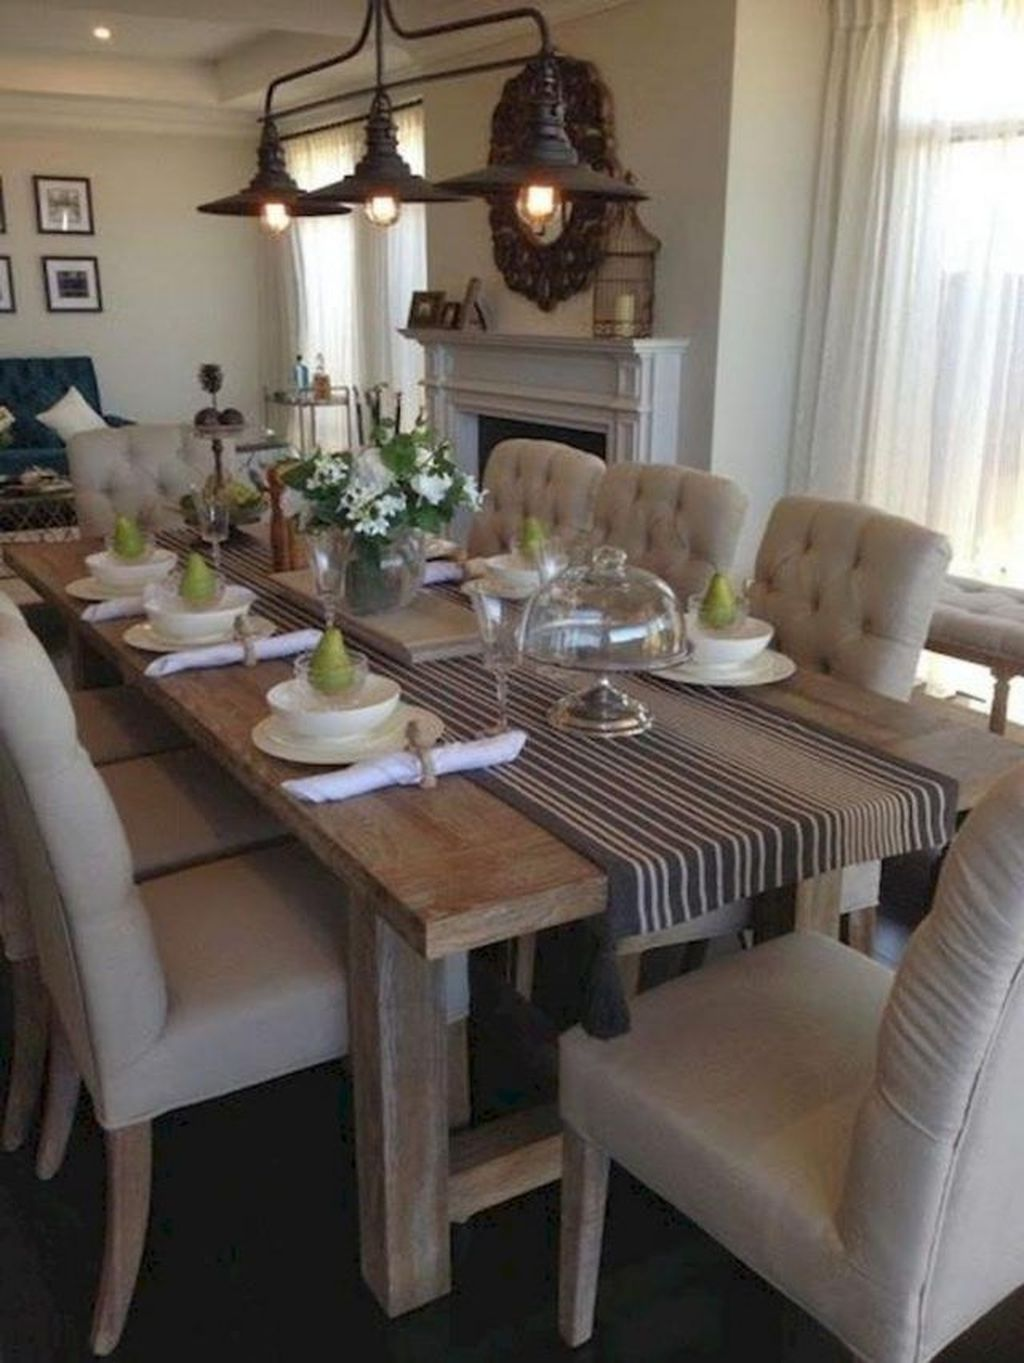 39 Latest Dining Room Design Ideas You Need To Try images